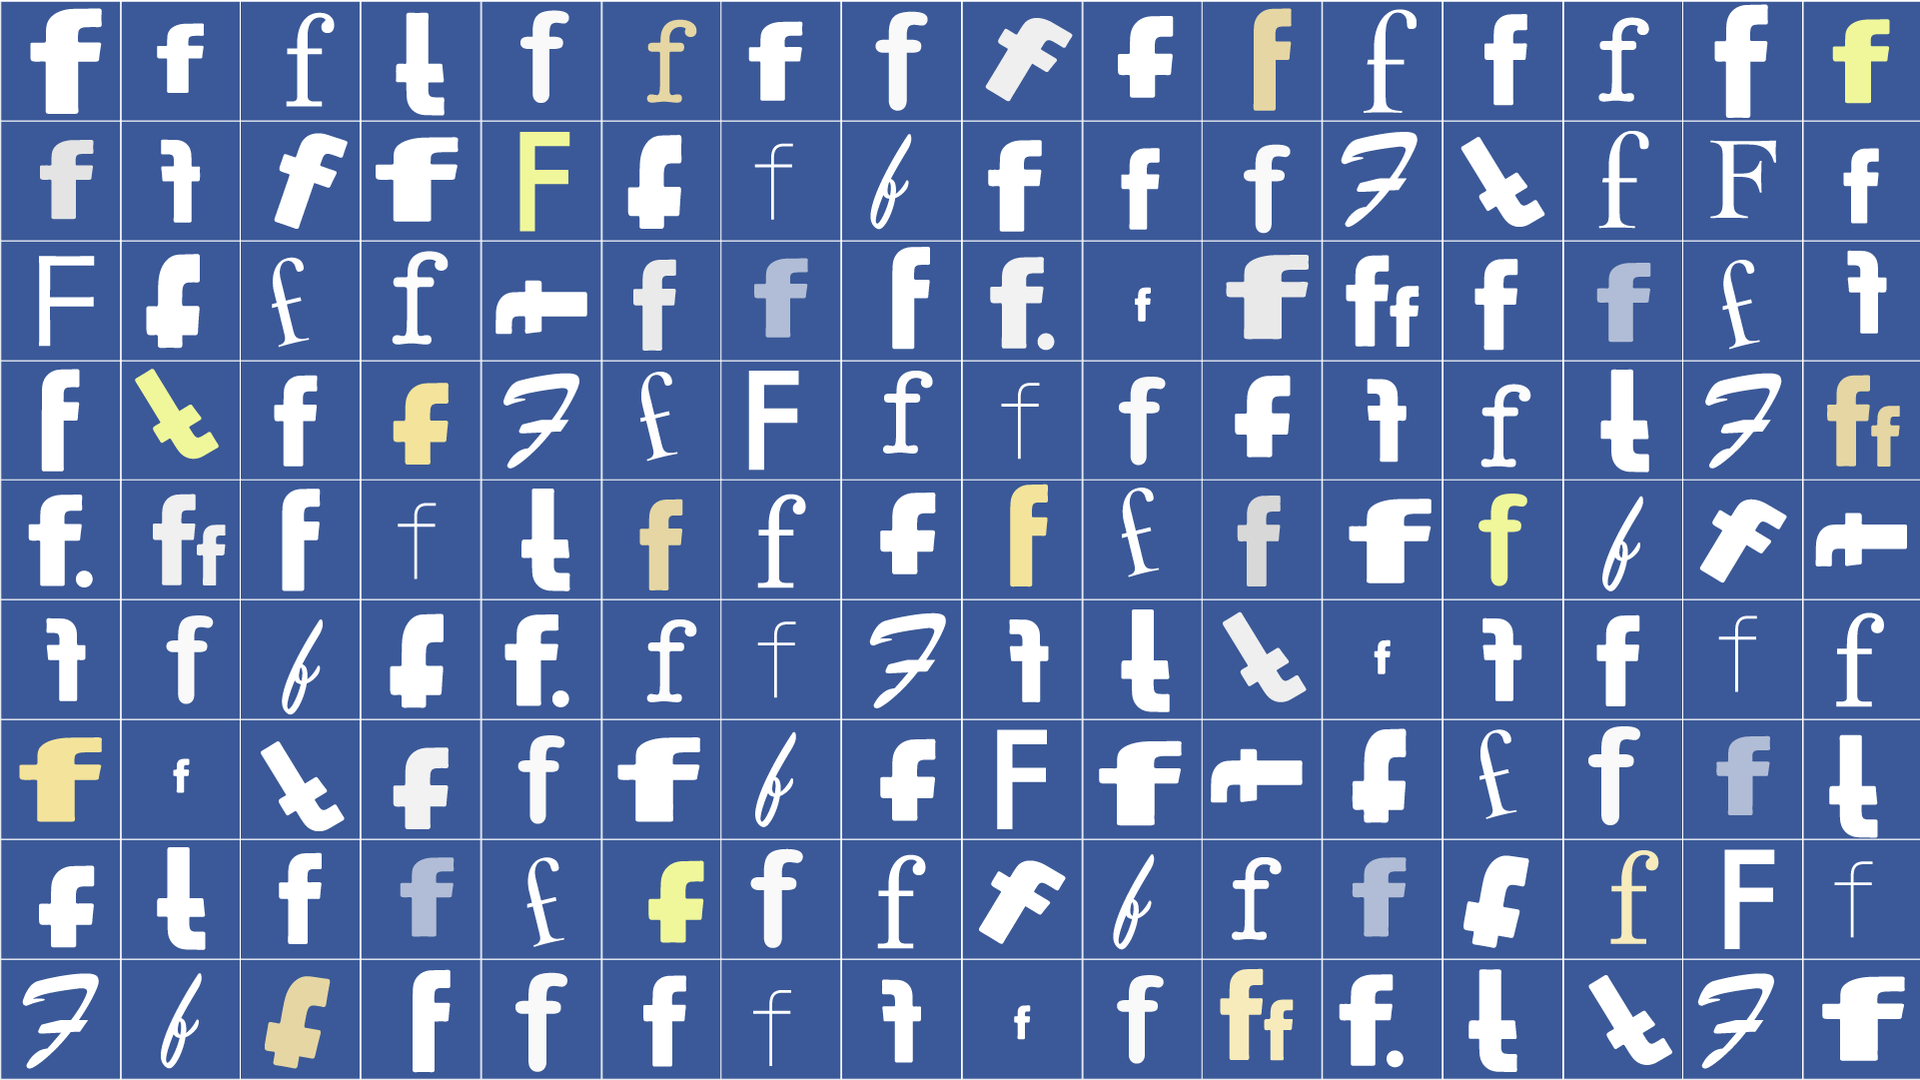 An illustration with many different Facebook logo stylings